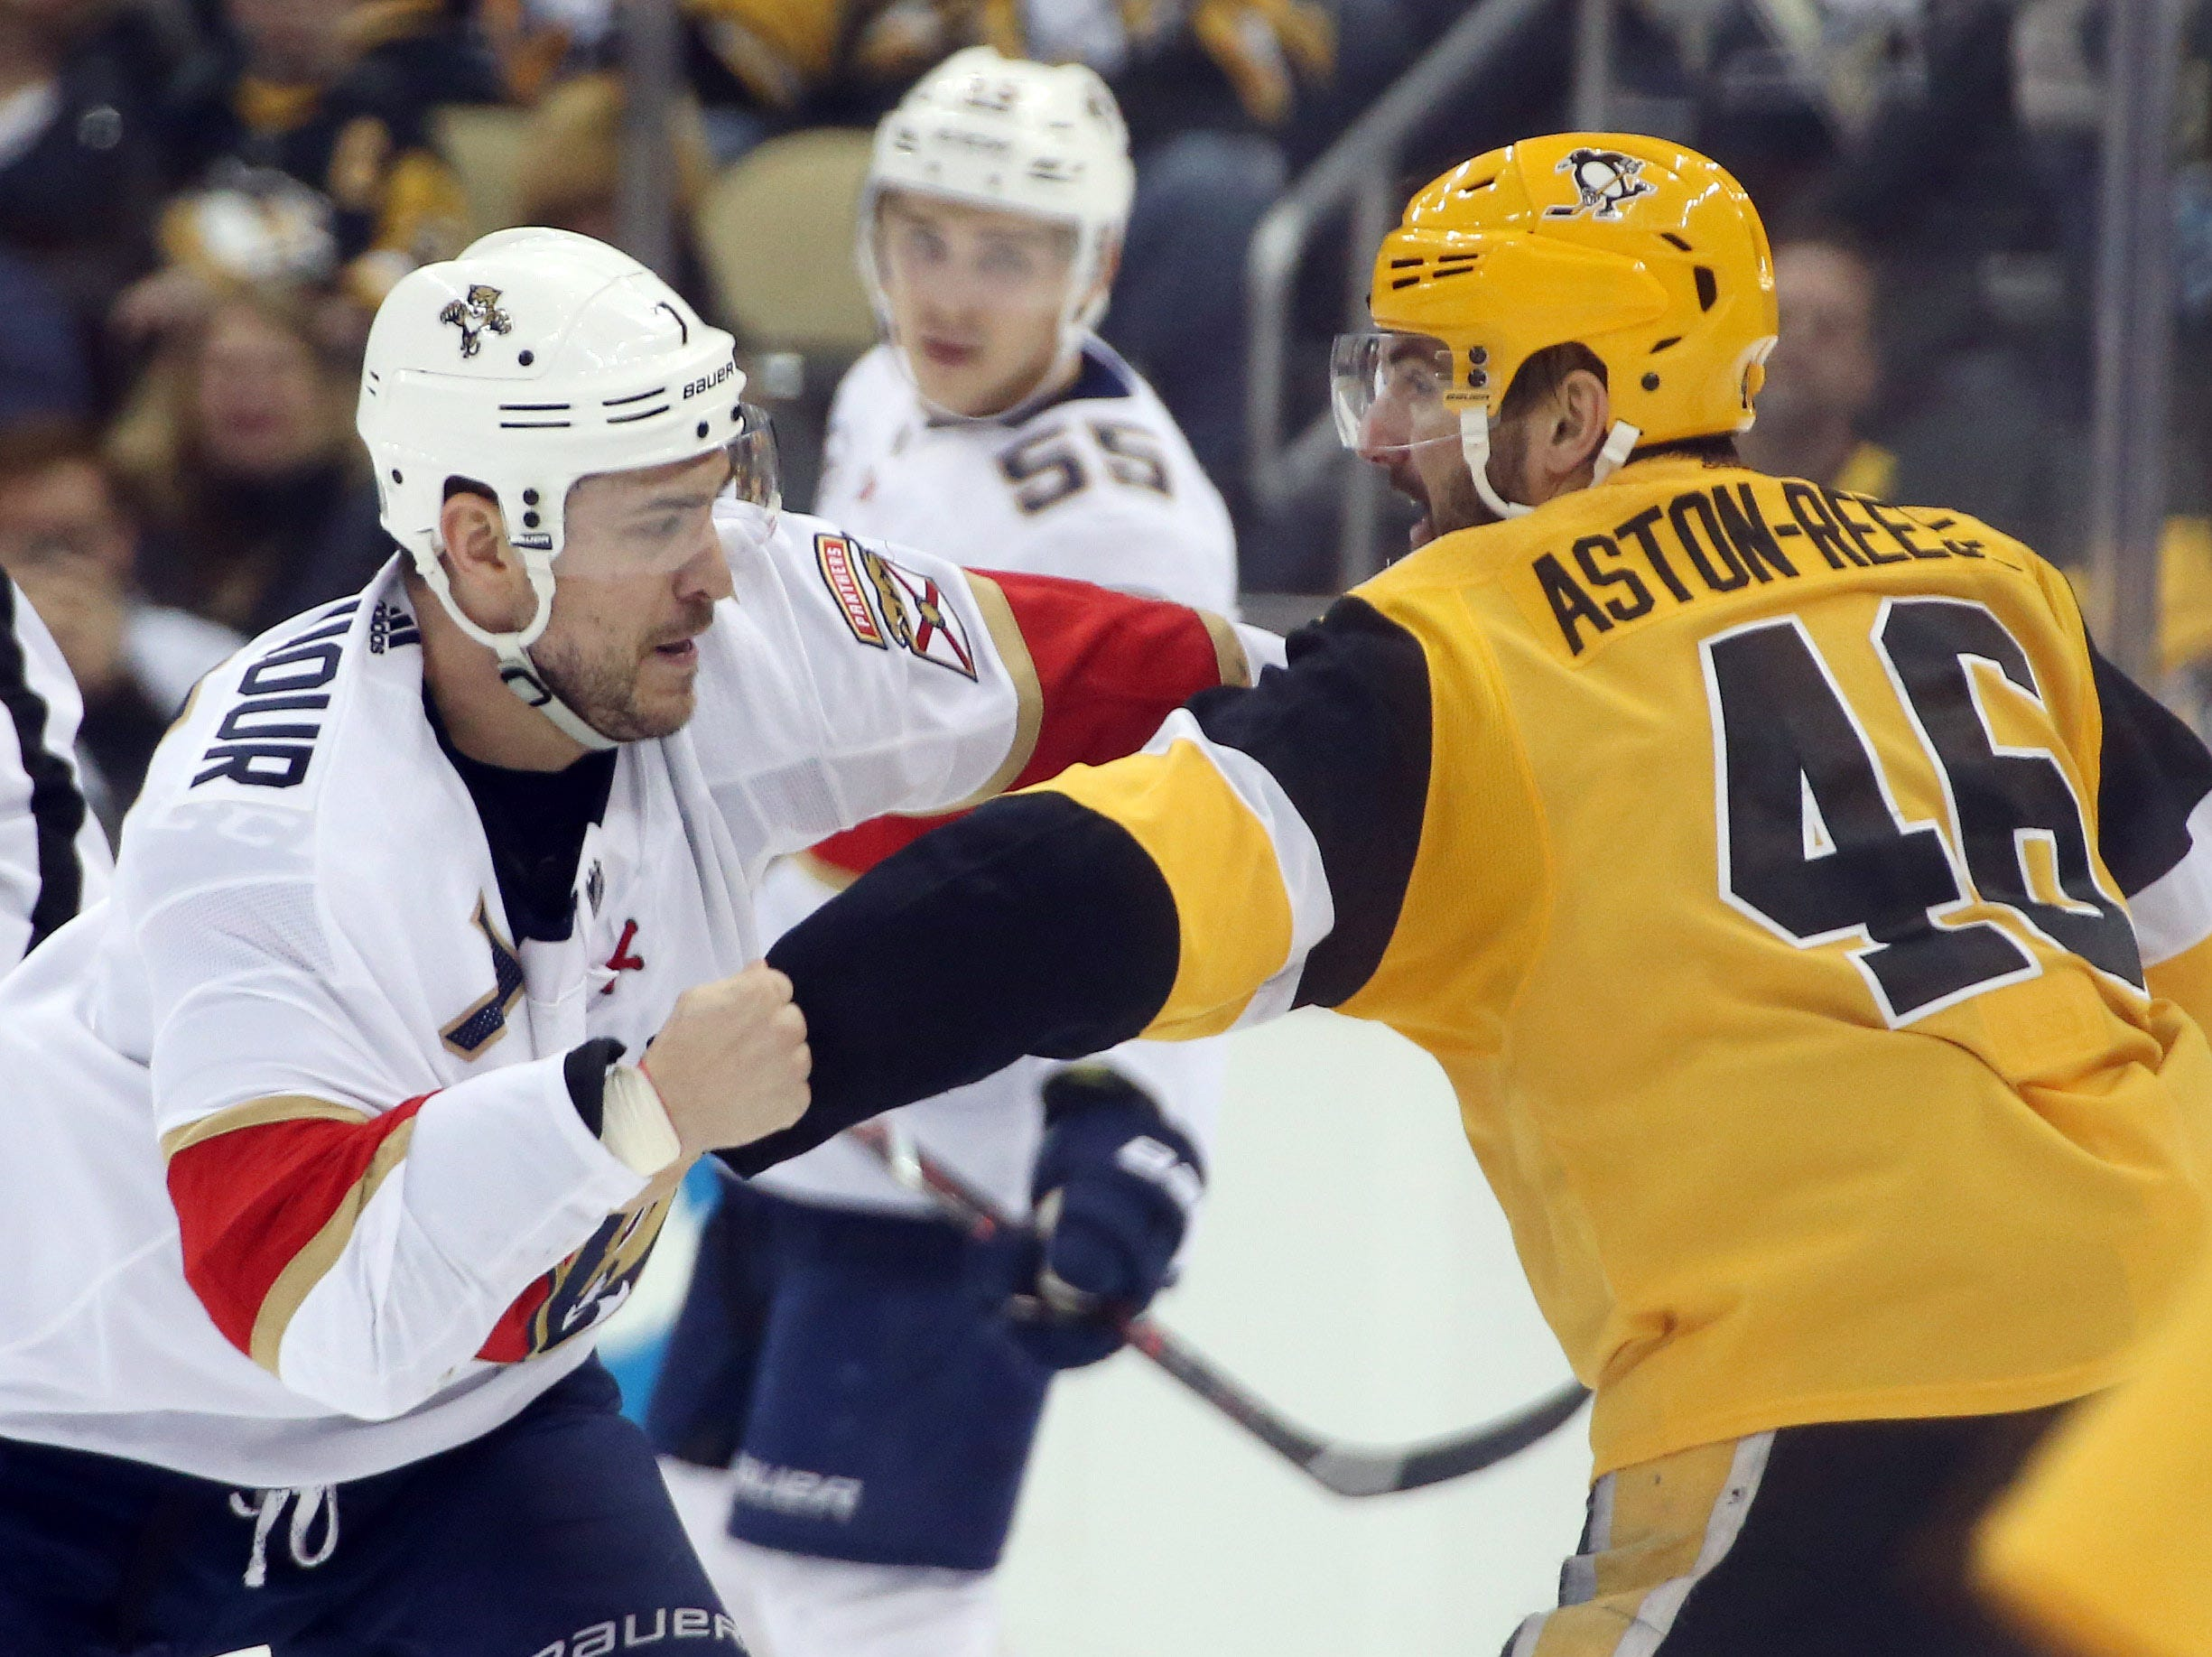 Jan. 8: Florida Panthers' Colton Sceviour vs. Pittsburgh Penguins' Zach Aston-Reese.